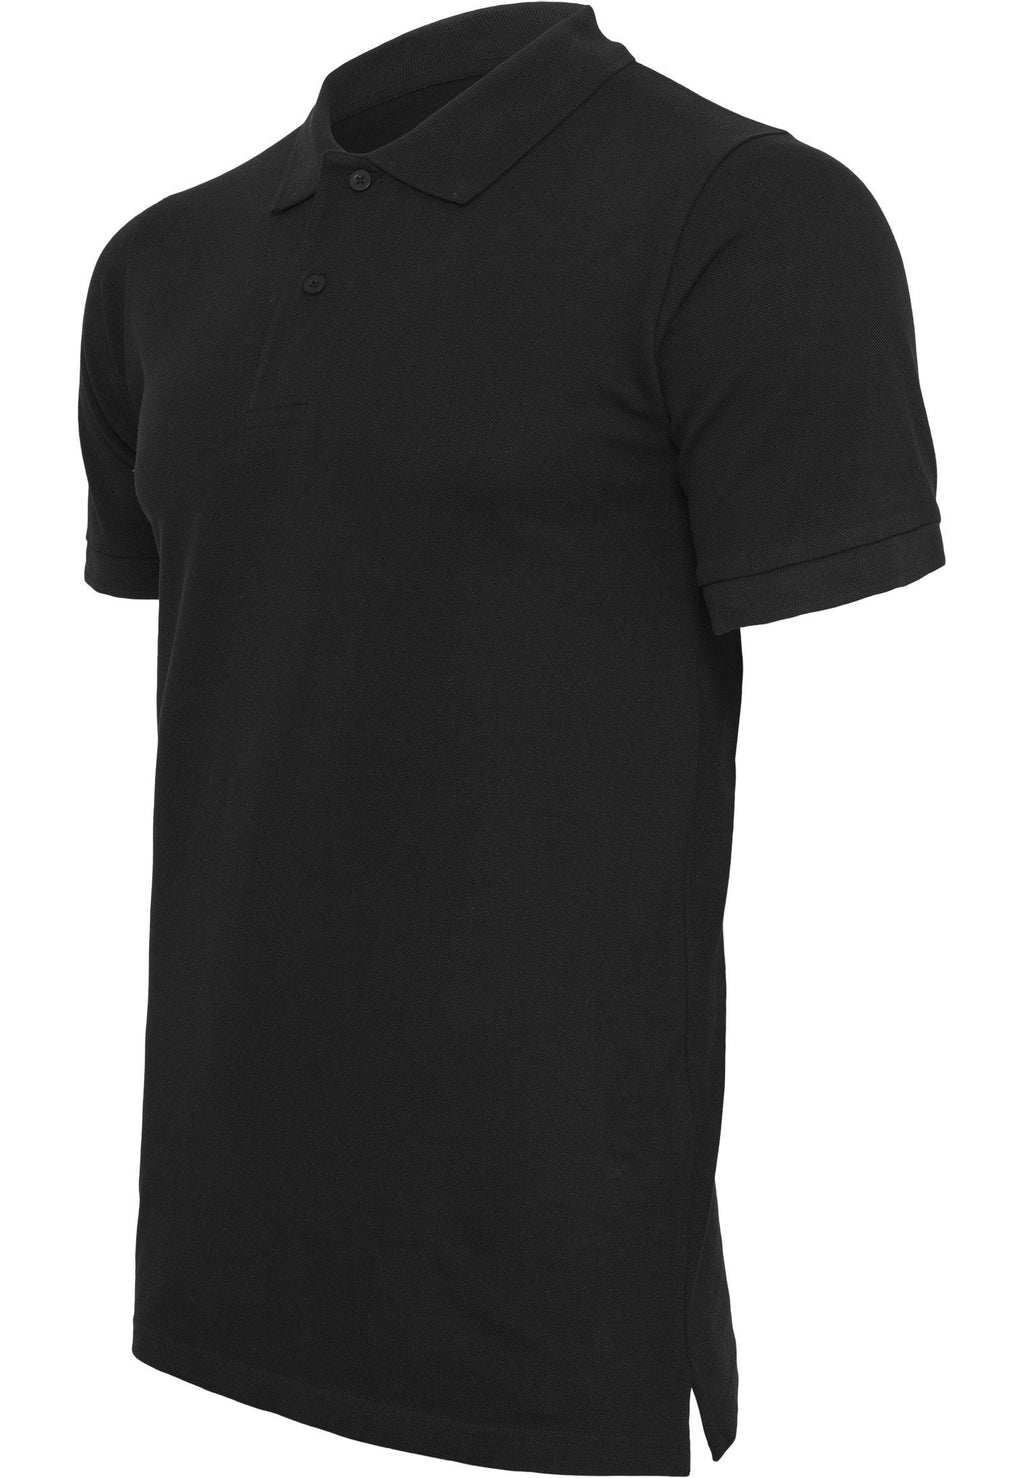 Basiz Pique Polo Shirt - Black